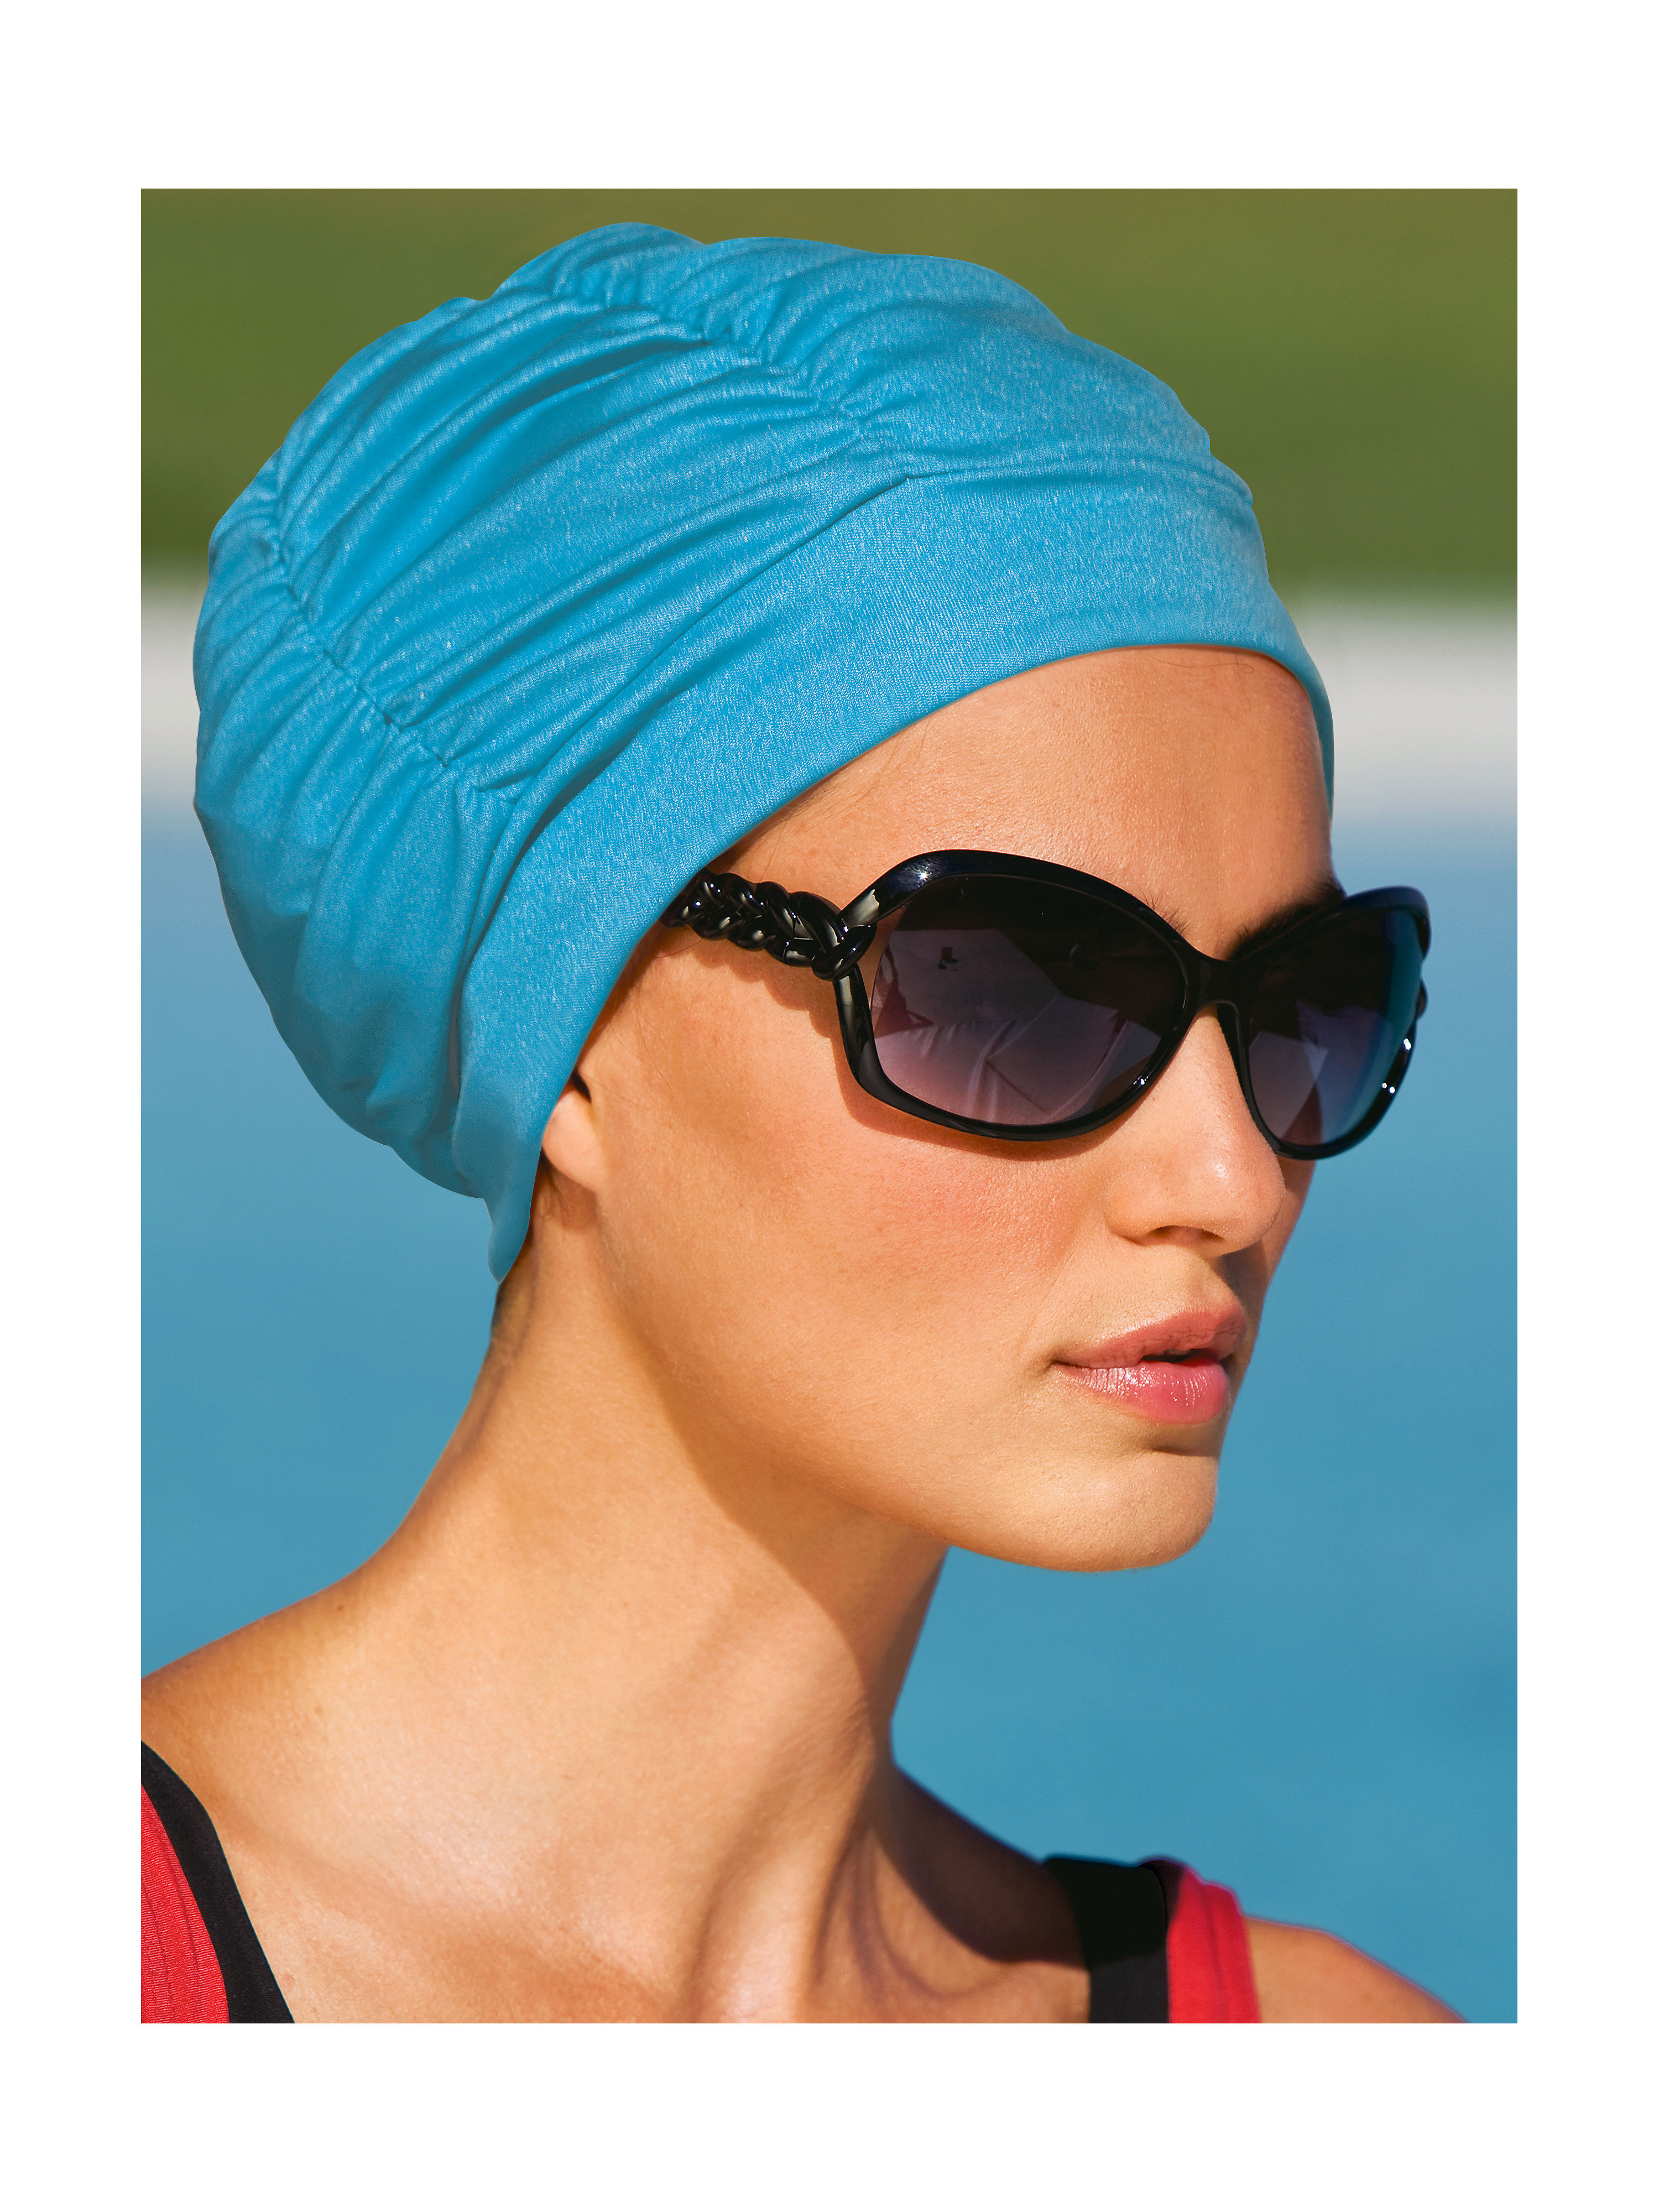 Swimming hat from Fashy turquoise